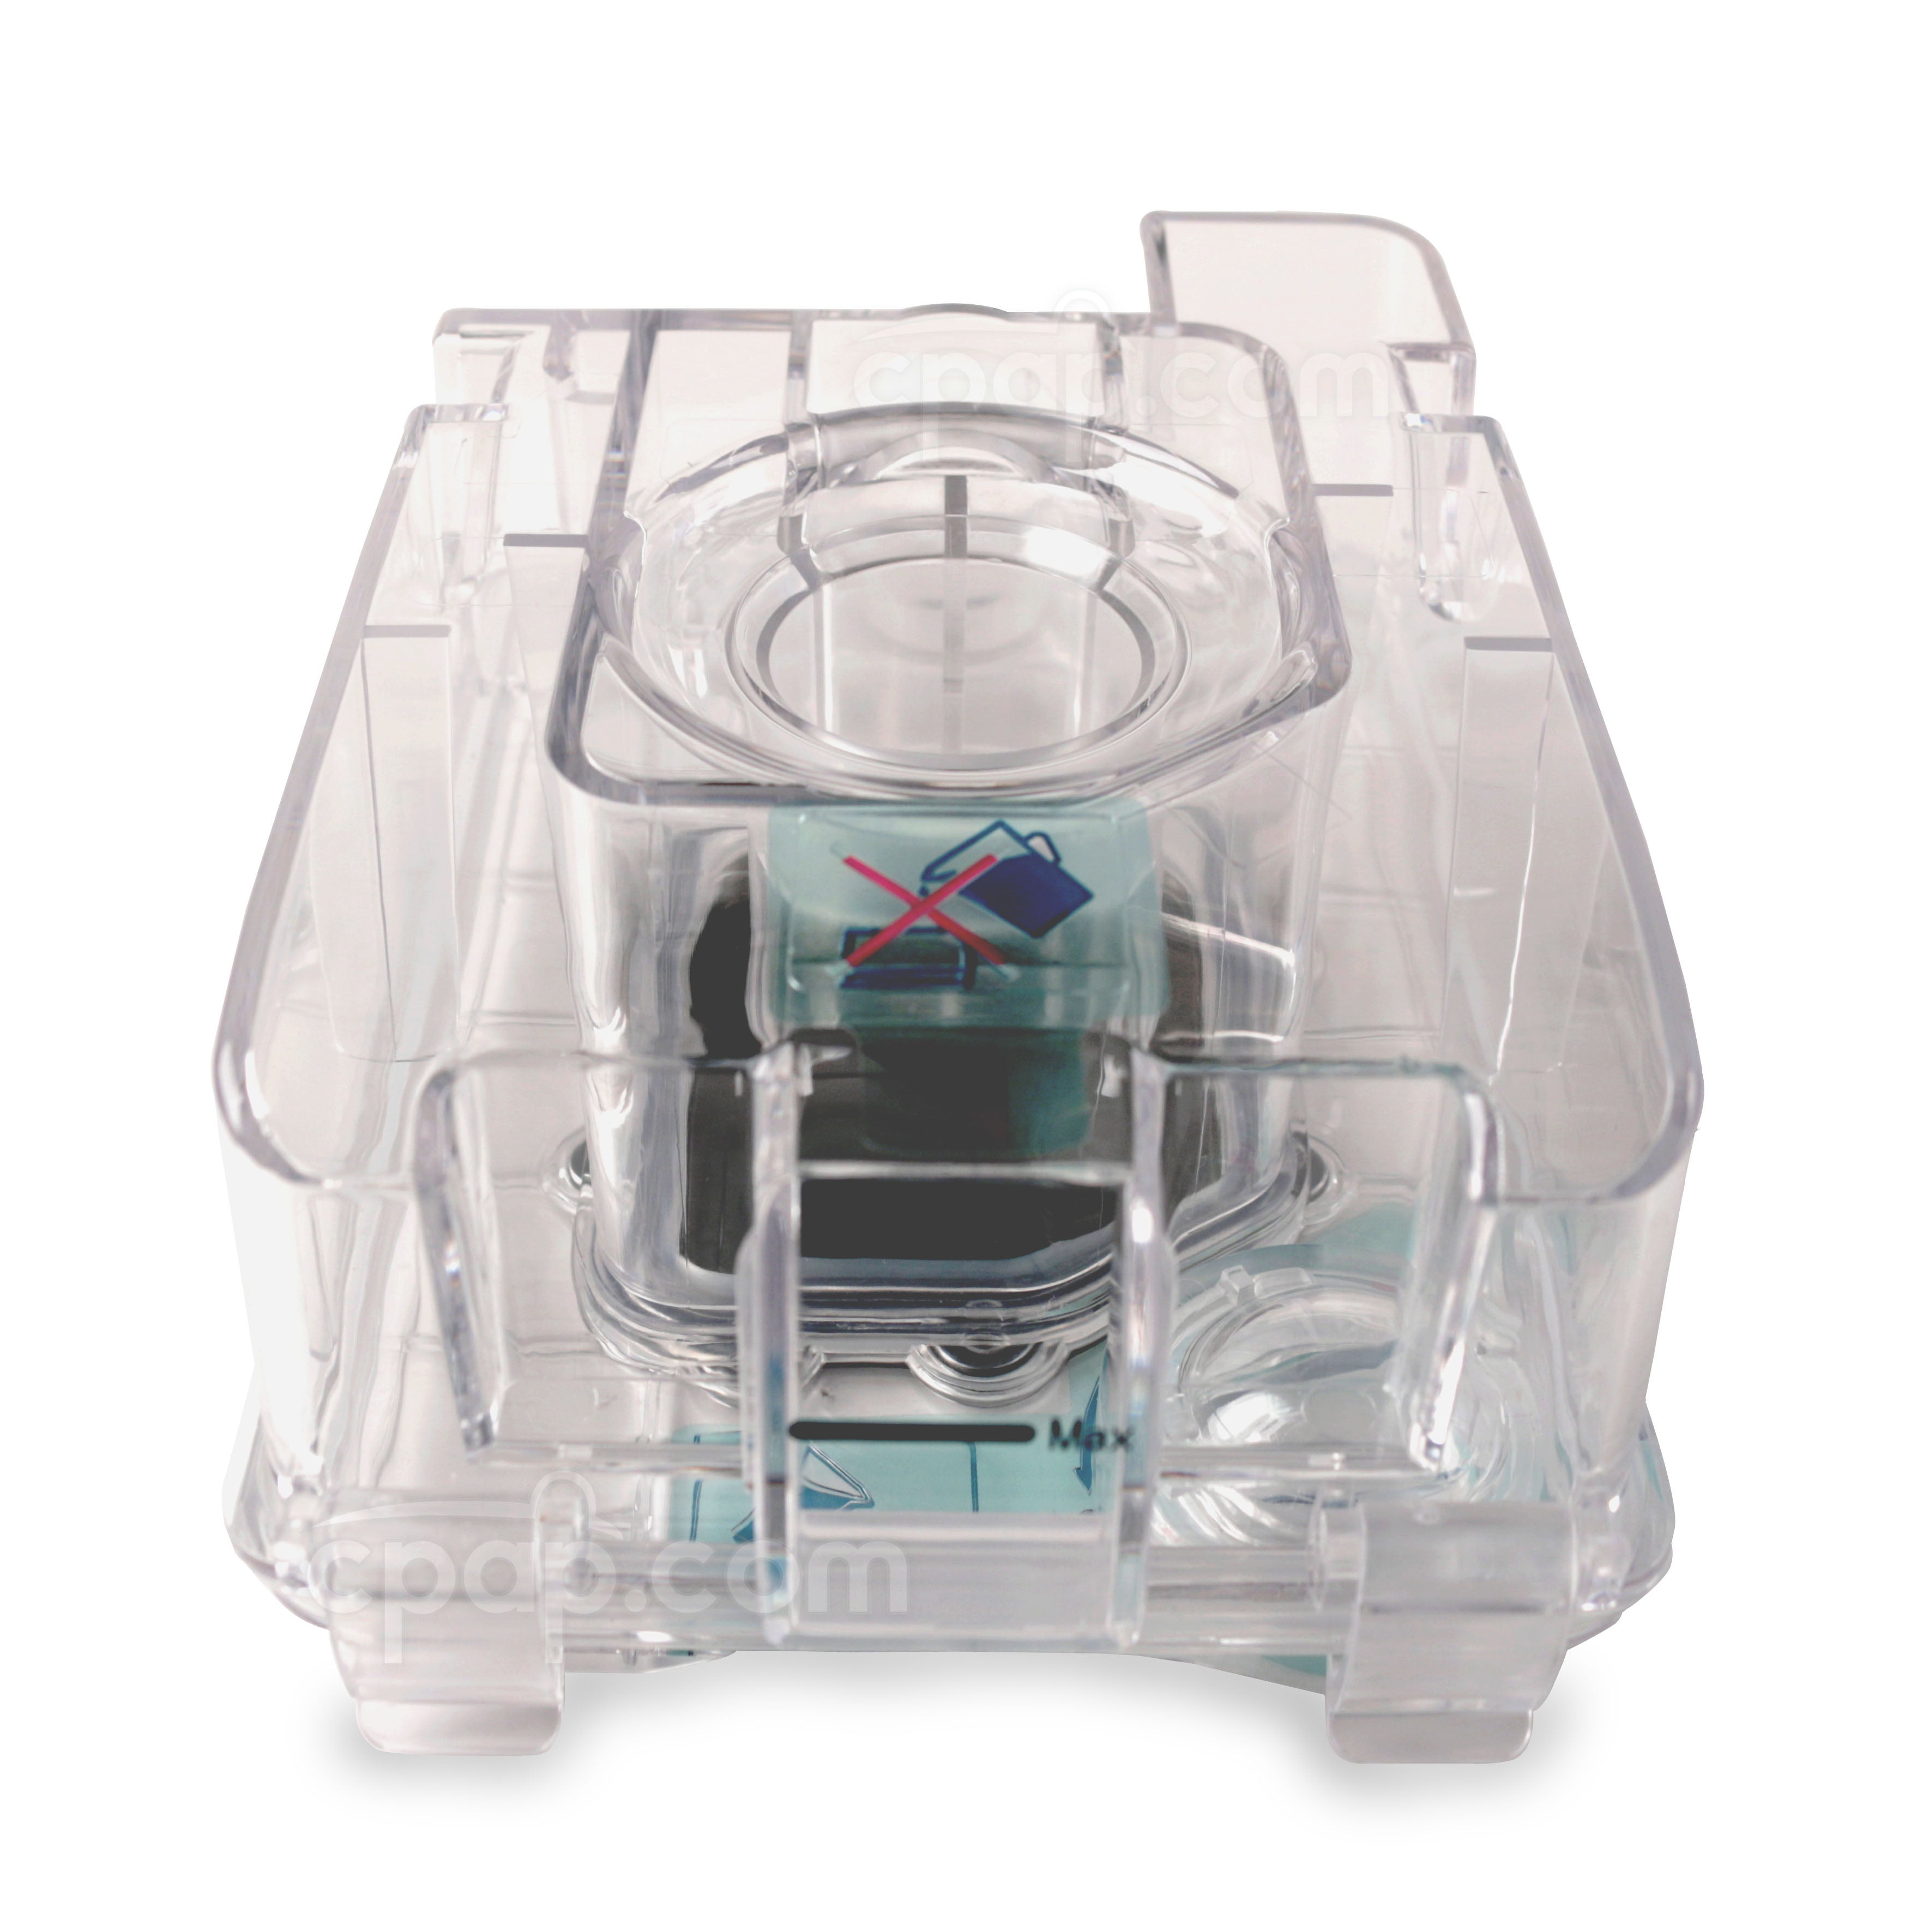 Front View of the Water Chamber for Luna Integrated H60 Heated Humidifier